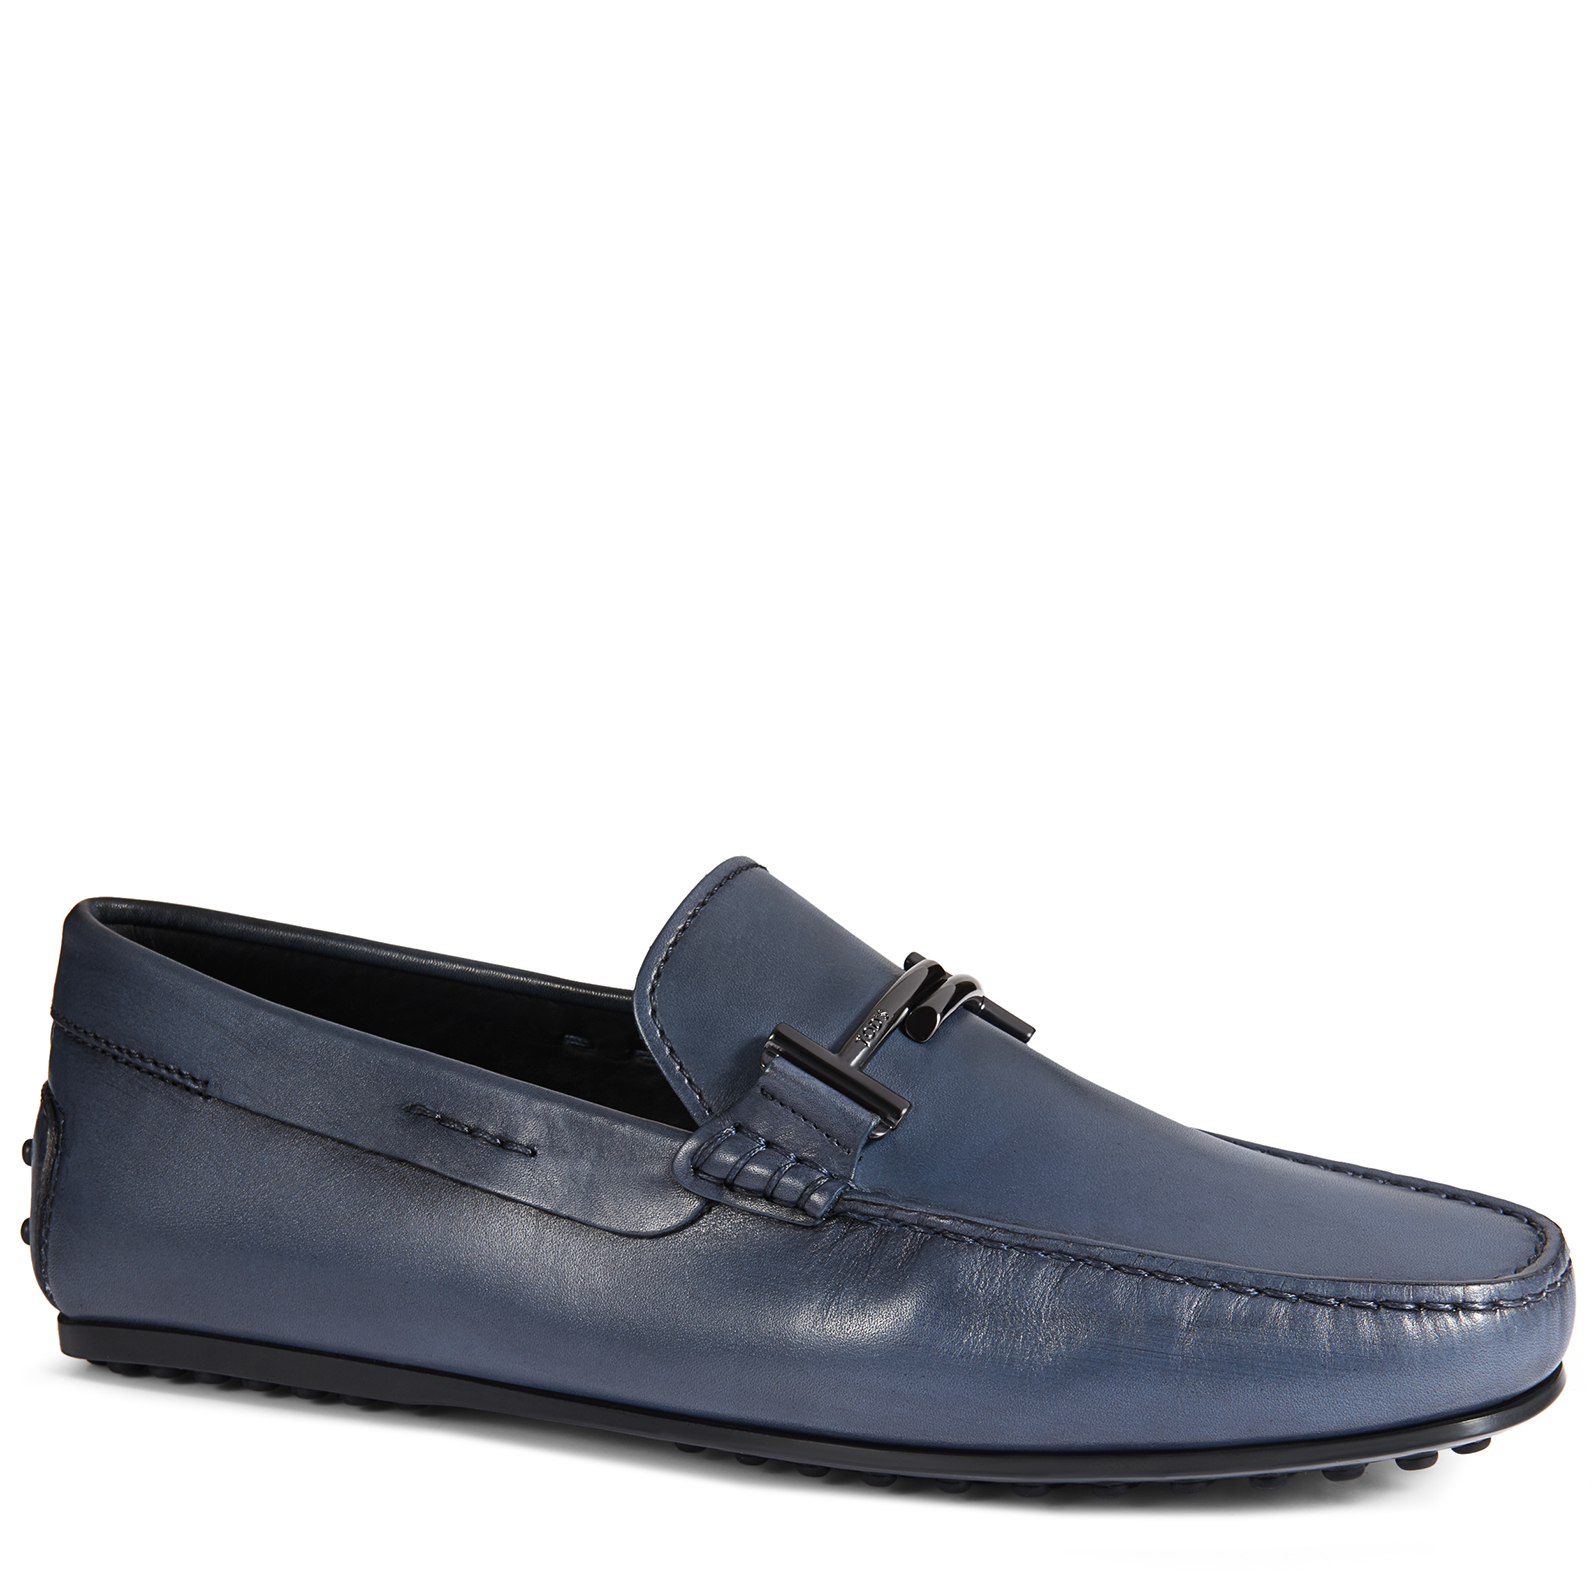 Tods Shoes Price in India | Tods Shoes Chicago | Tods Loafers